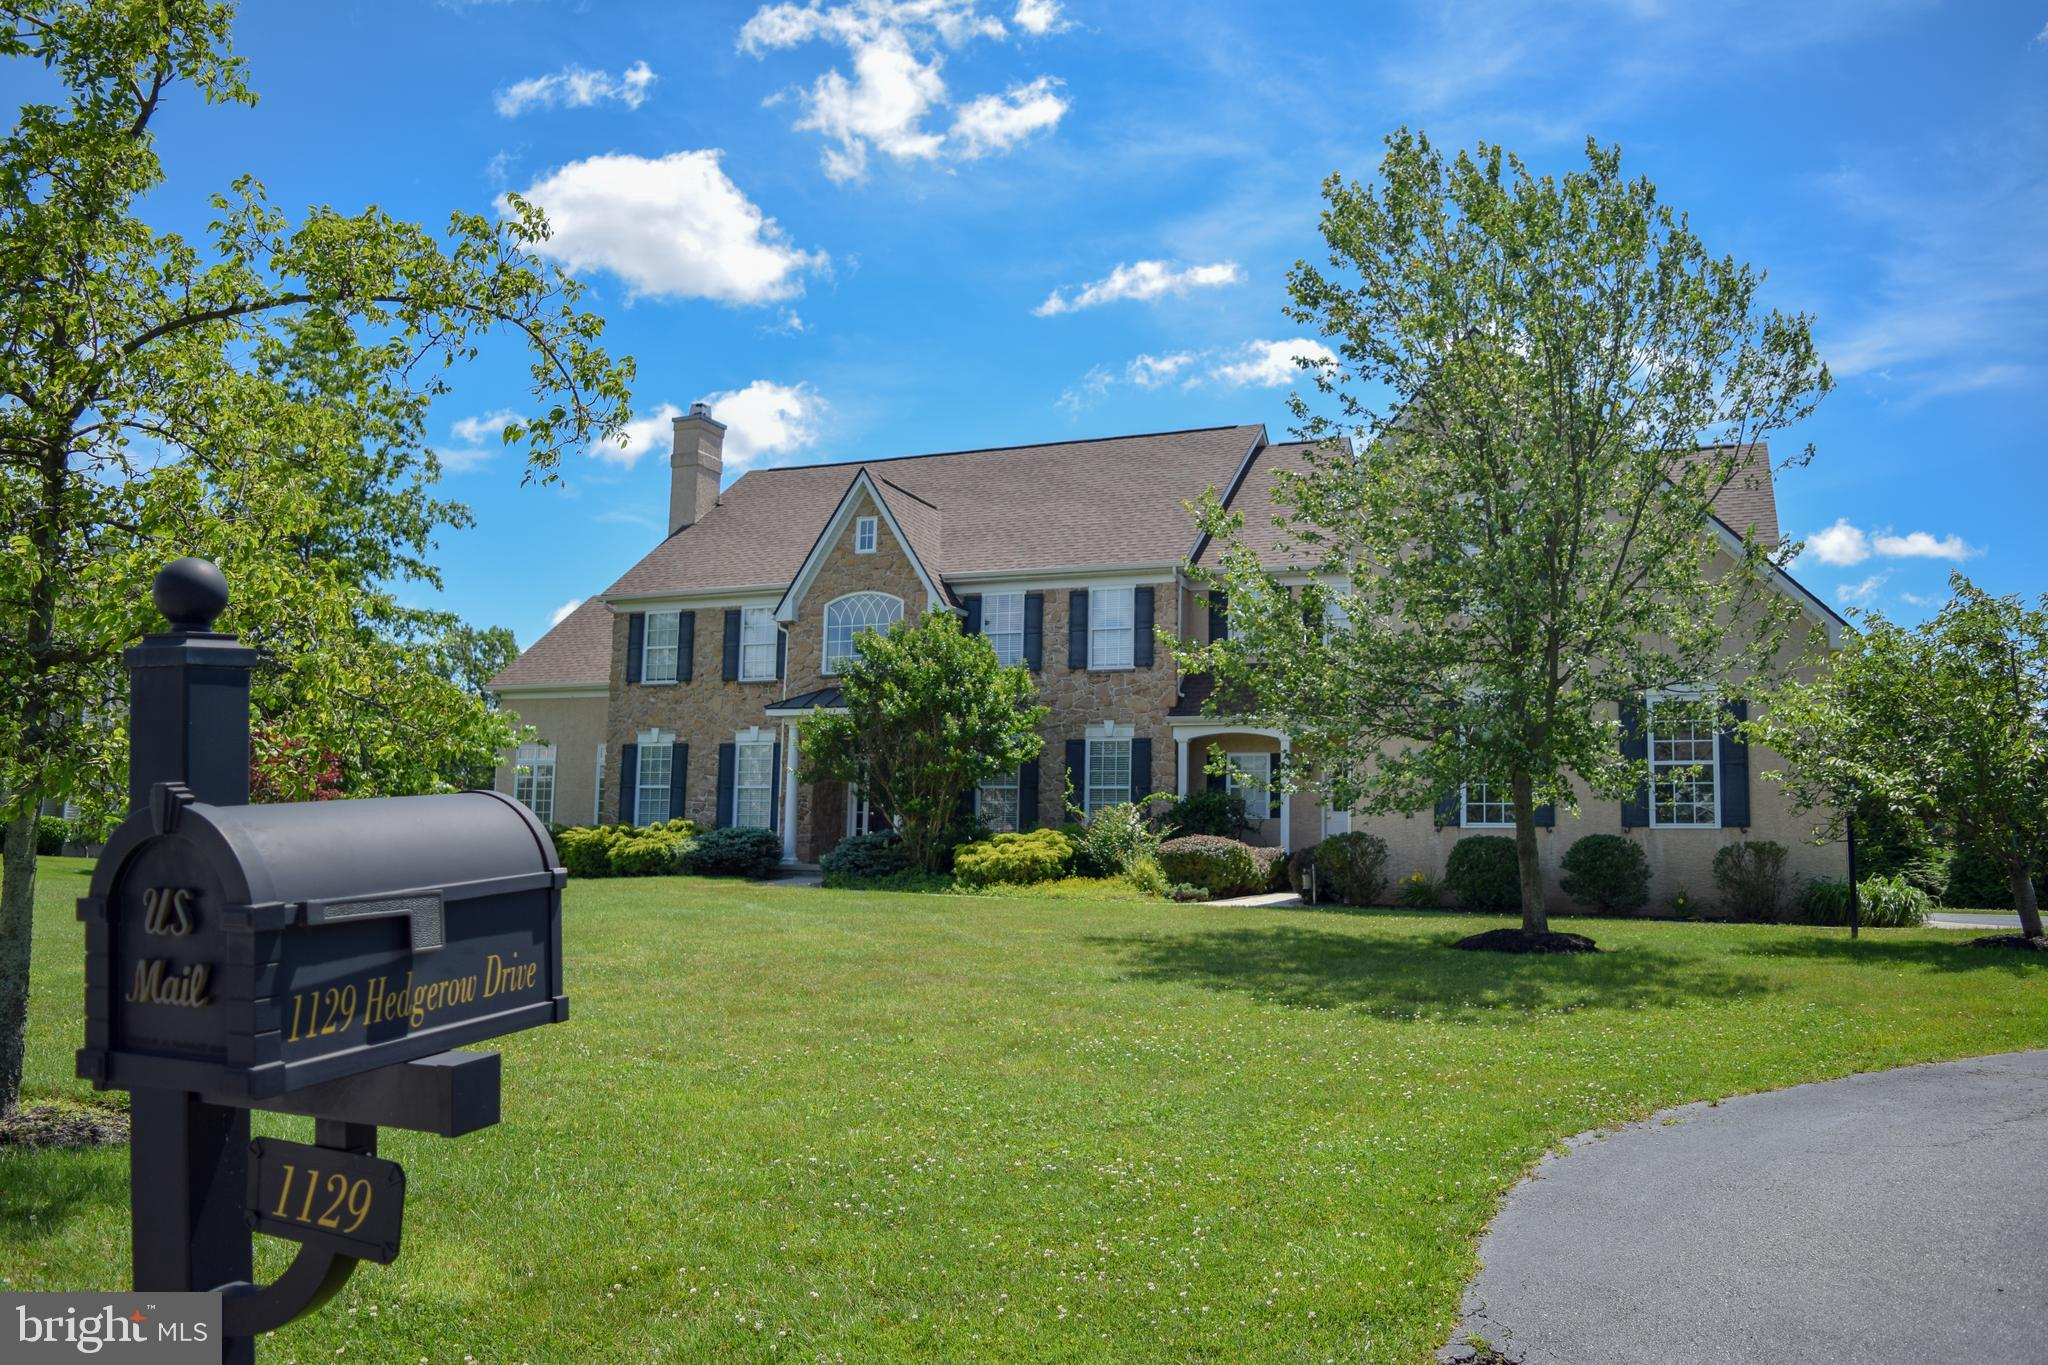 1129 HEDGEROW DRIVE, GARNET VALLEY, PA 19061